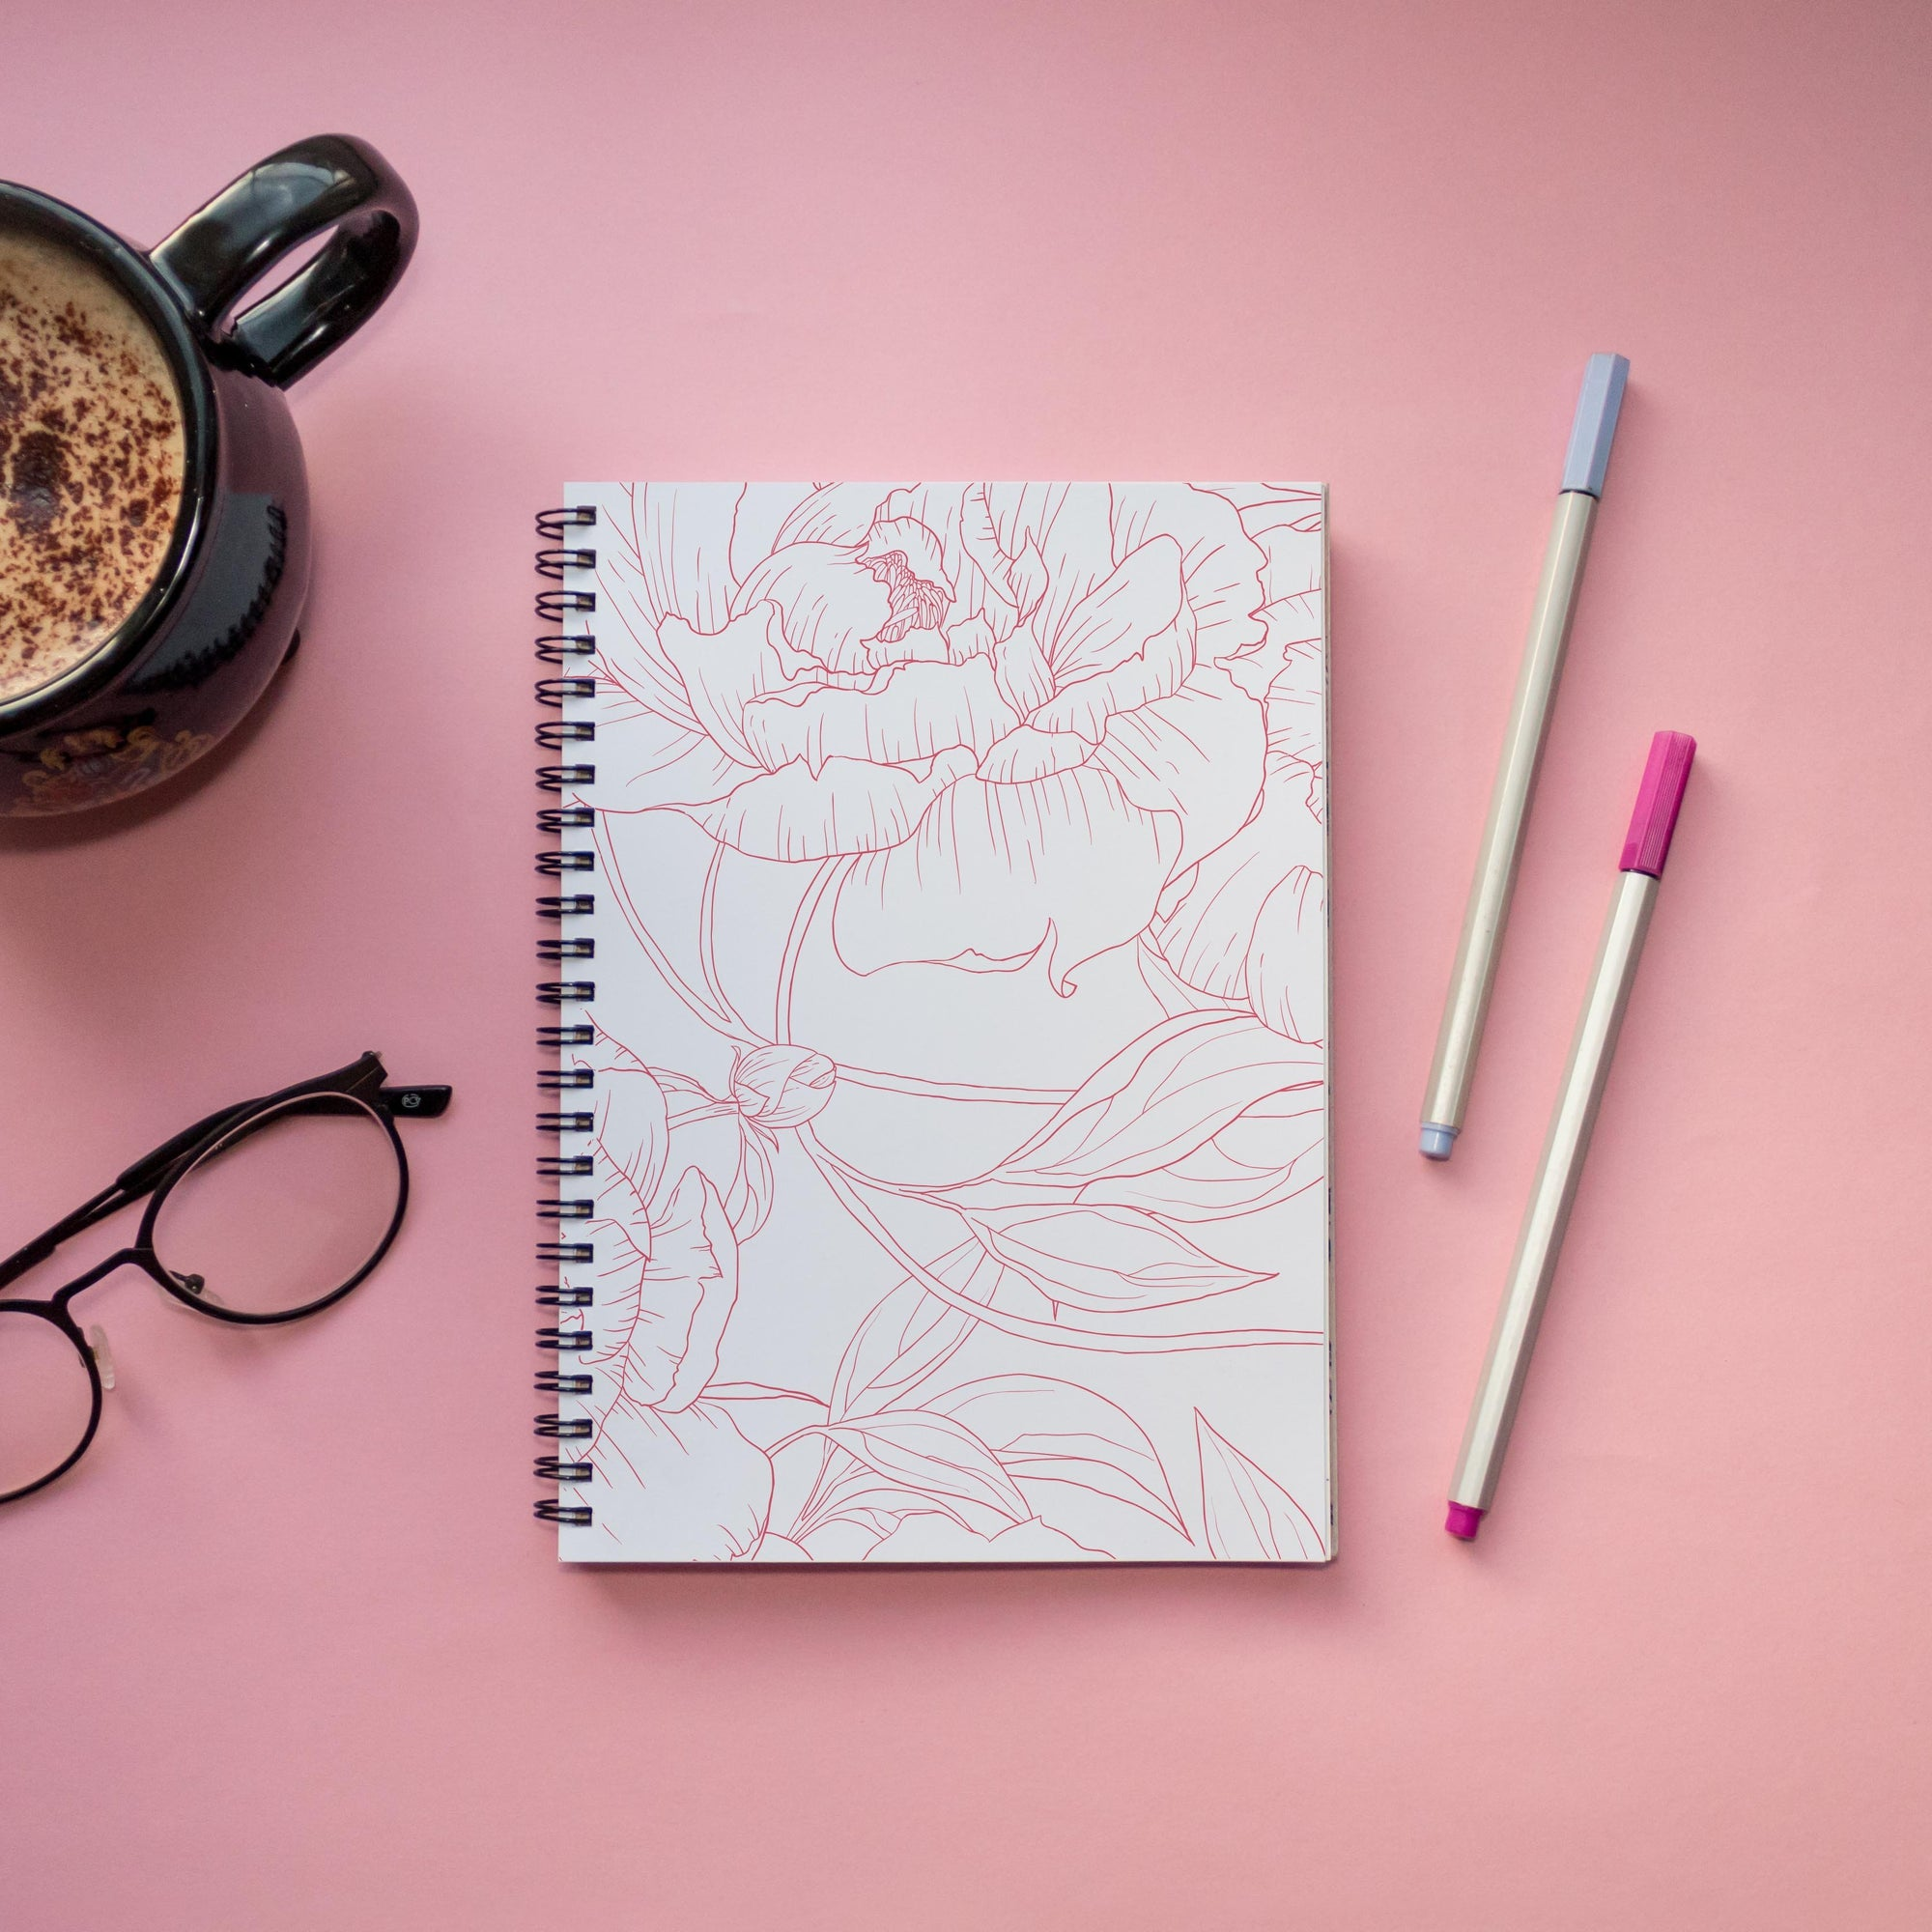 Leanne & Co. Spiral Notebook Peony Outline Spiral Notebook